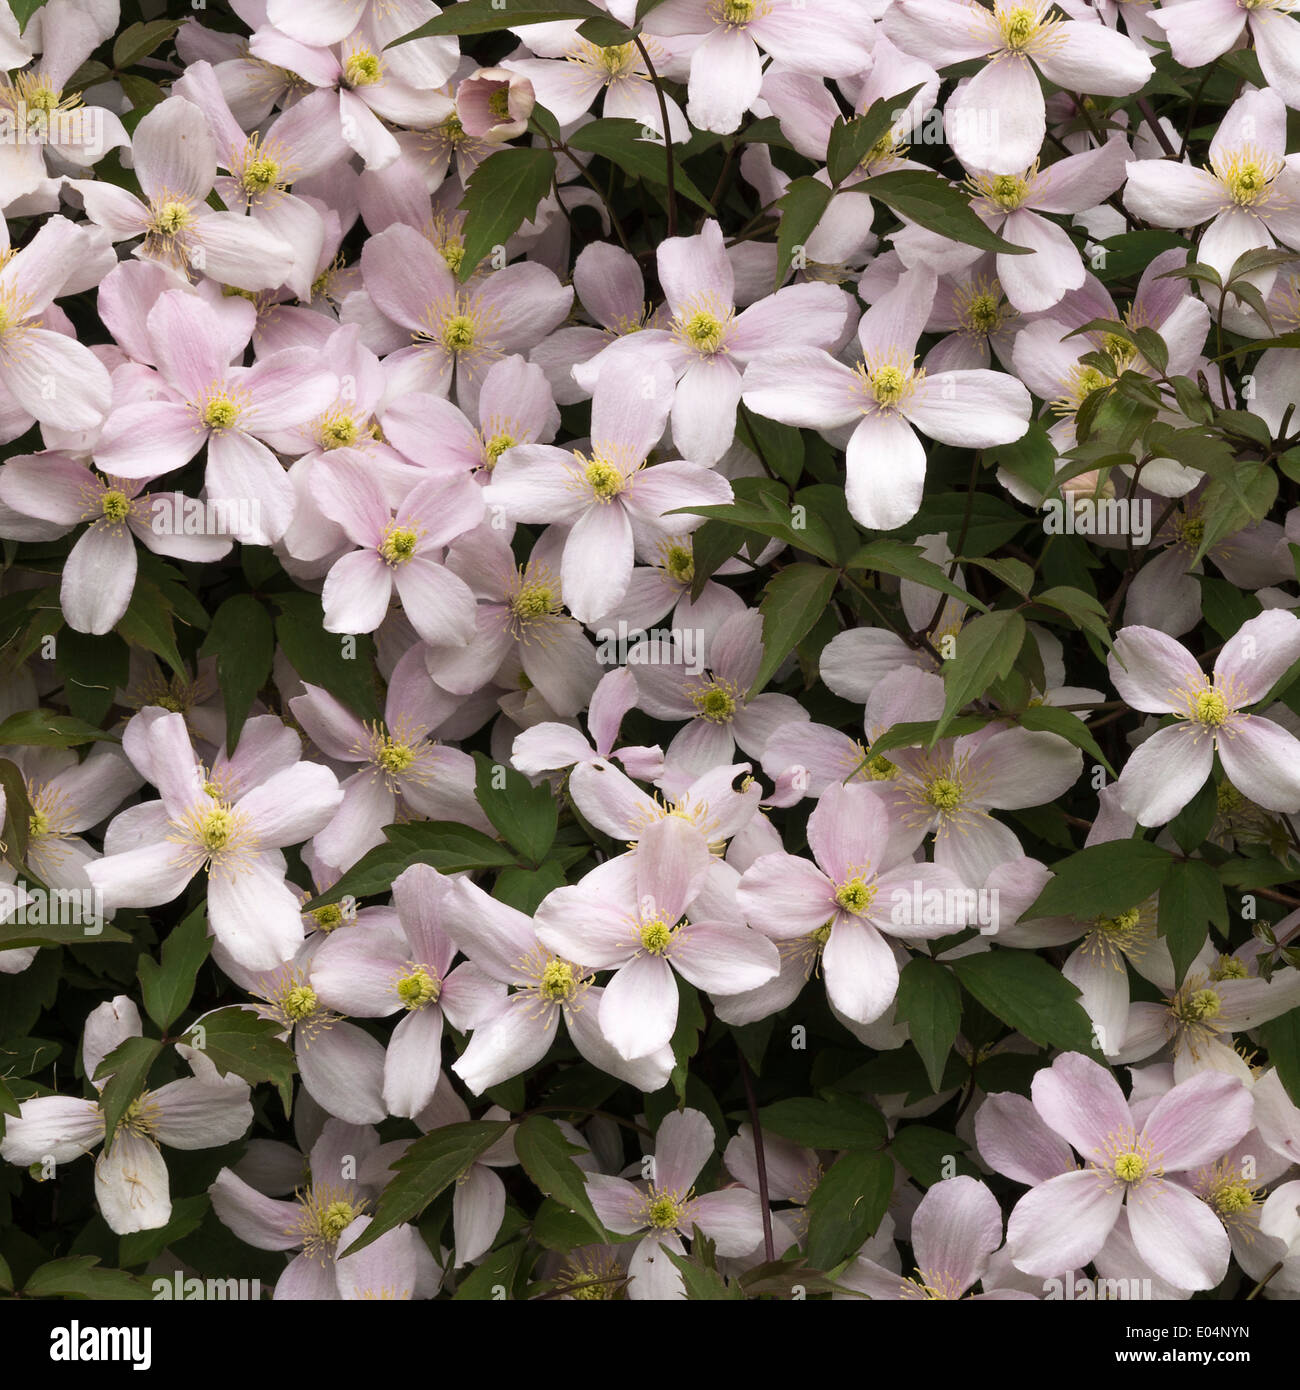 Closeup of Early Flowering Clematis Montana Rubens Producing Pale Pink Flowers in an Alsager Garden Cheshire England - Stock Image